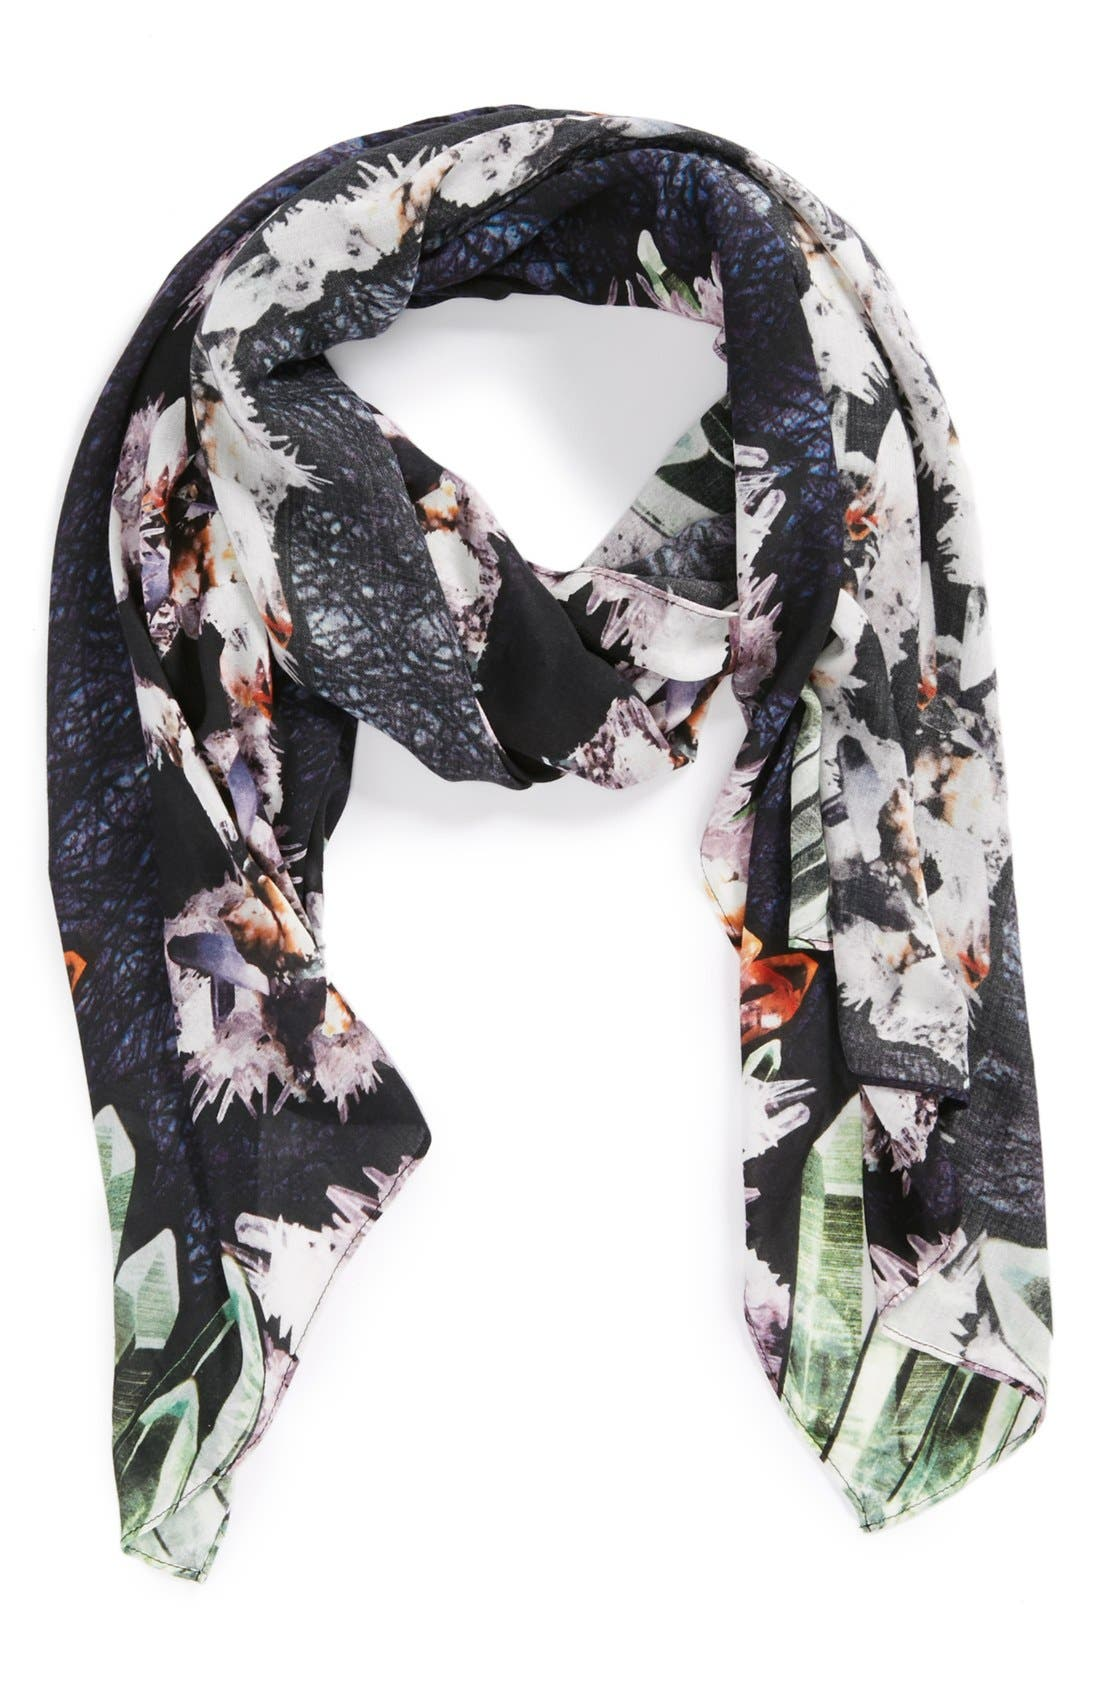 Alternate Image 1 Selected - Front Row Society 'Disambiguation Skull' Scarf